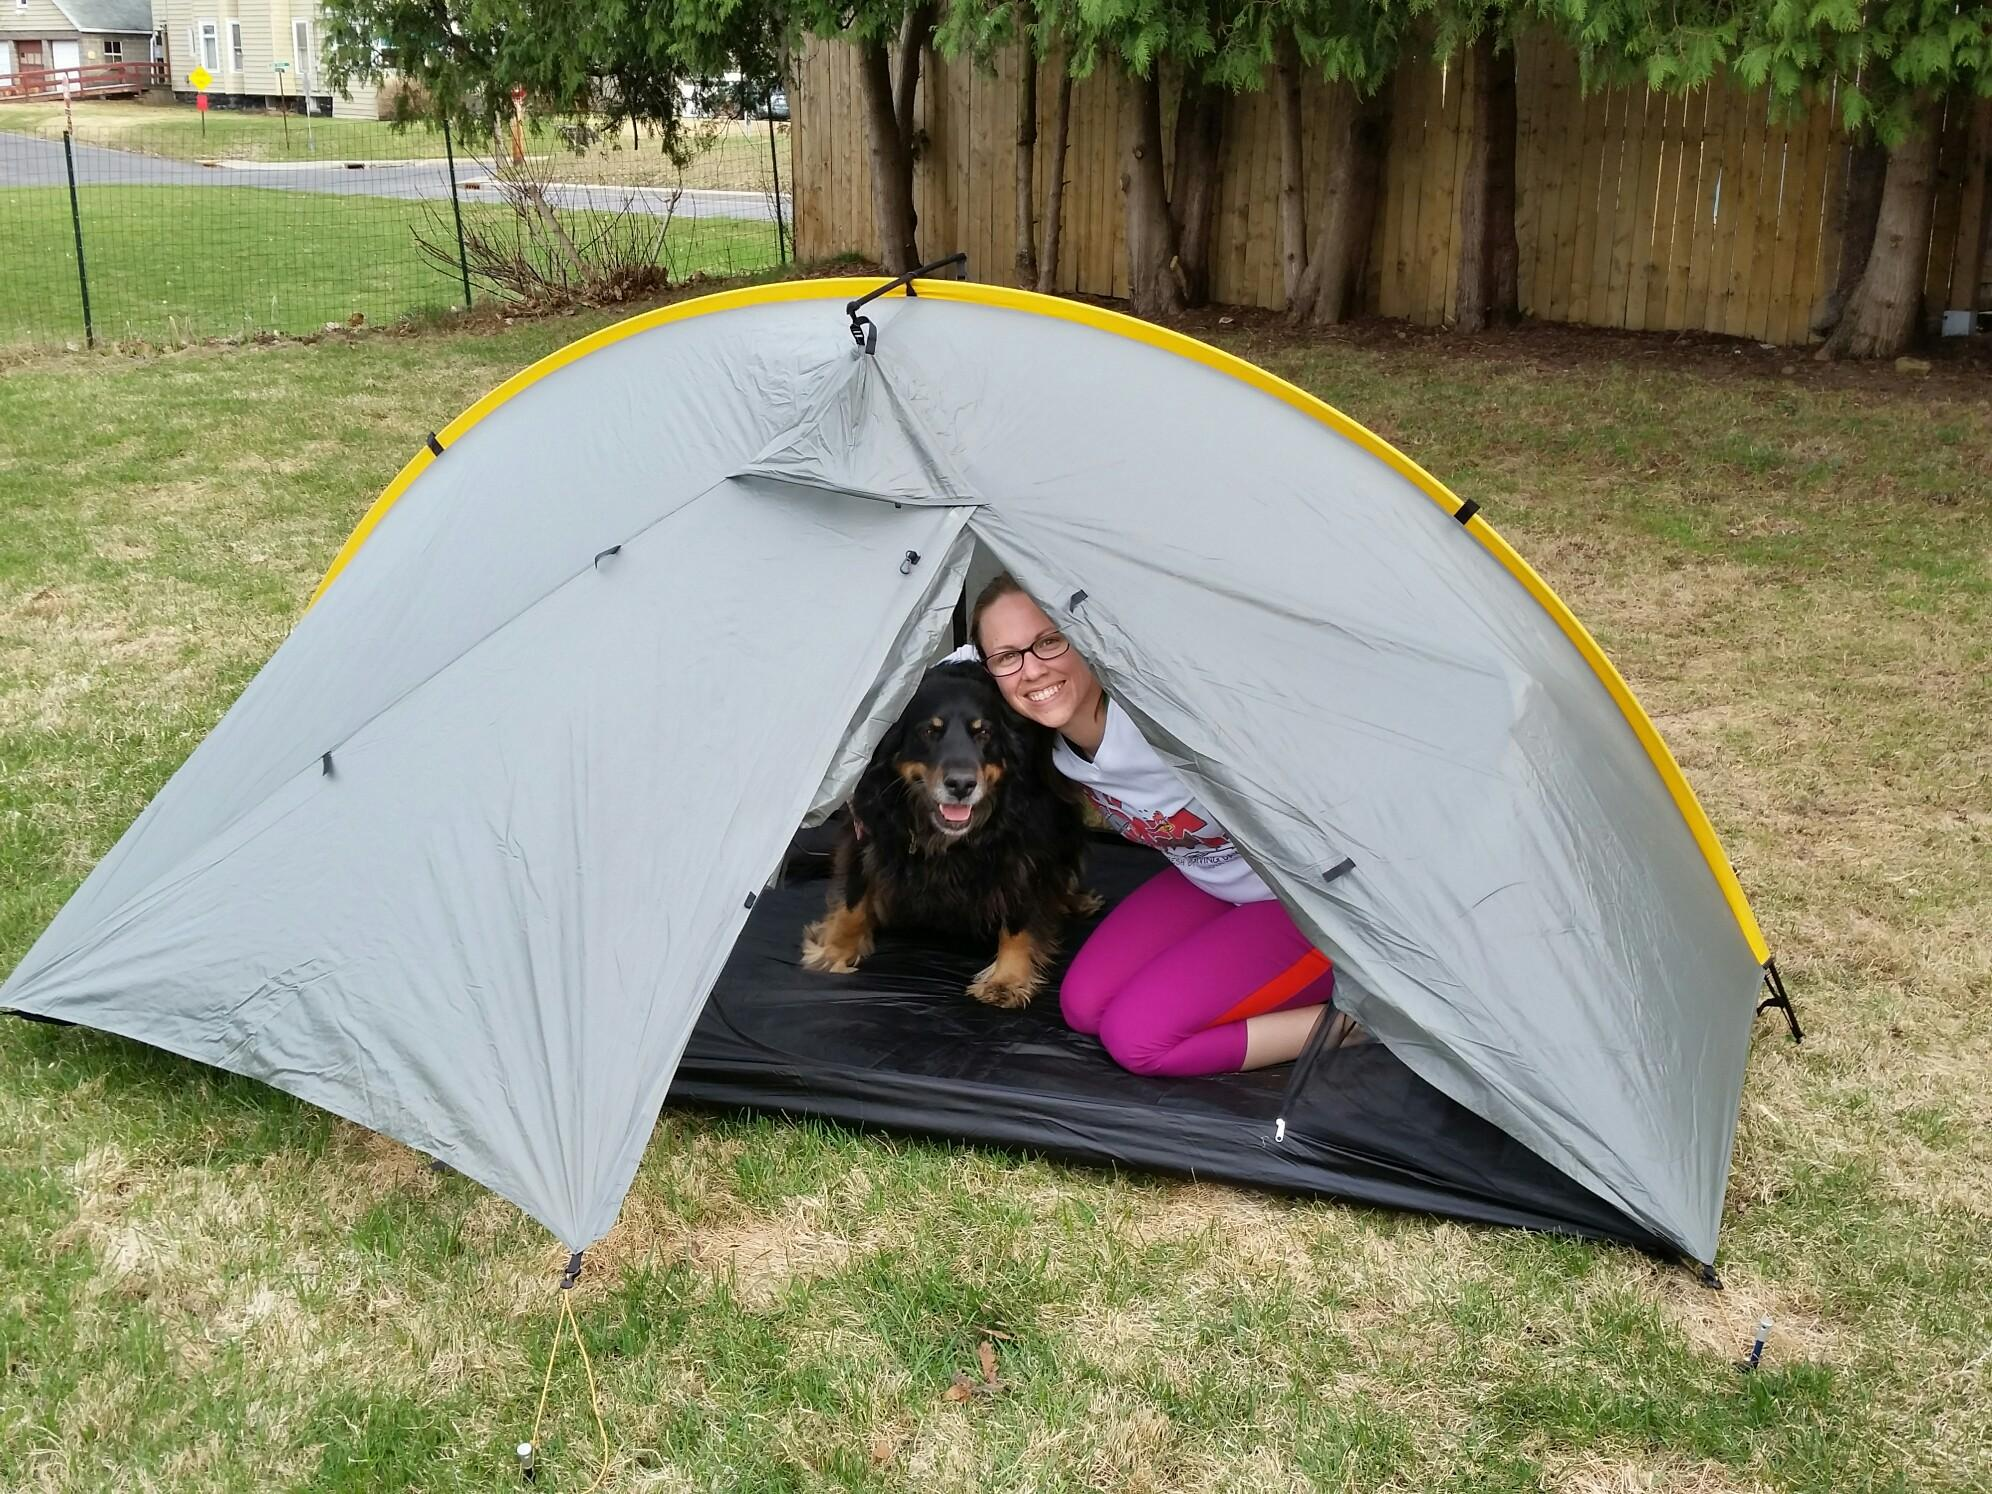 Gracie and me in our Tarptent last night.